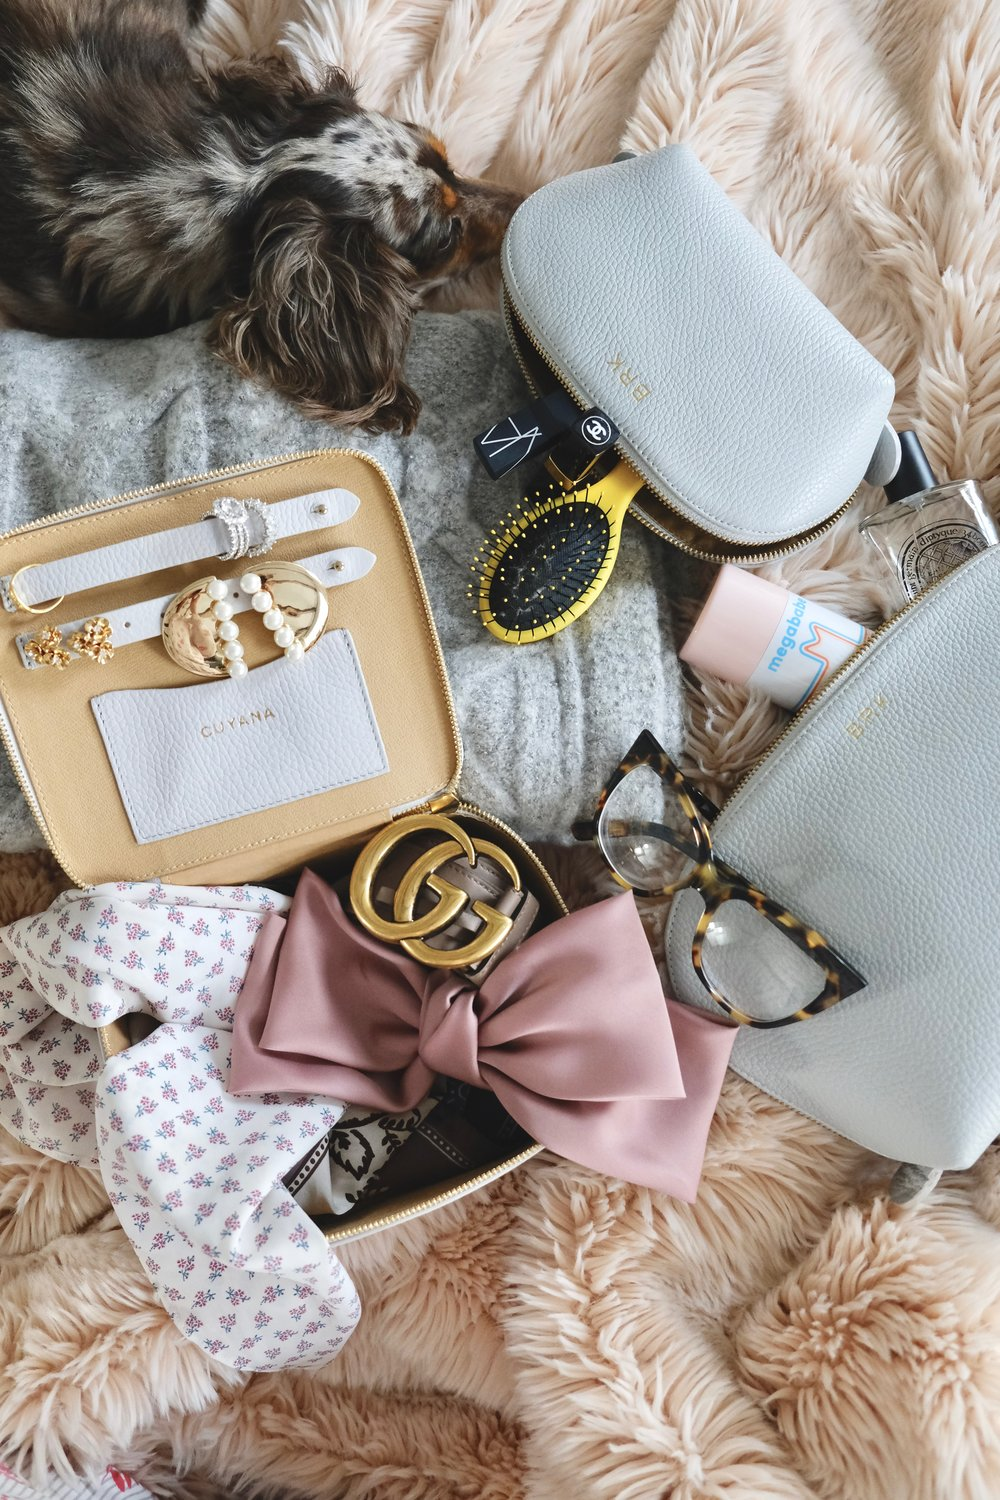 SHOP THIS PHOTO:    Cosmetic Bags   /   Jewelry Case   /   Bow   /   Pearl Earrings   /   Cluster Earrings   / Rings (my own) /   Belt   /   Glasses   /   Travel Brush   /   Scarf   / Silk Scarves (my own)